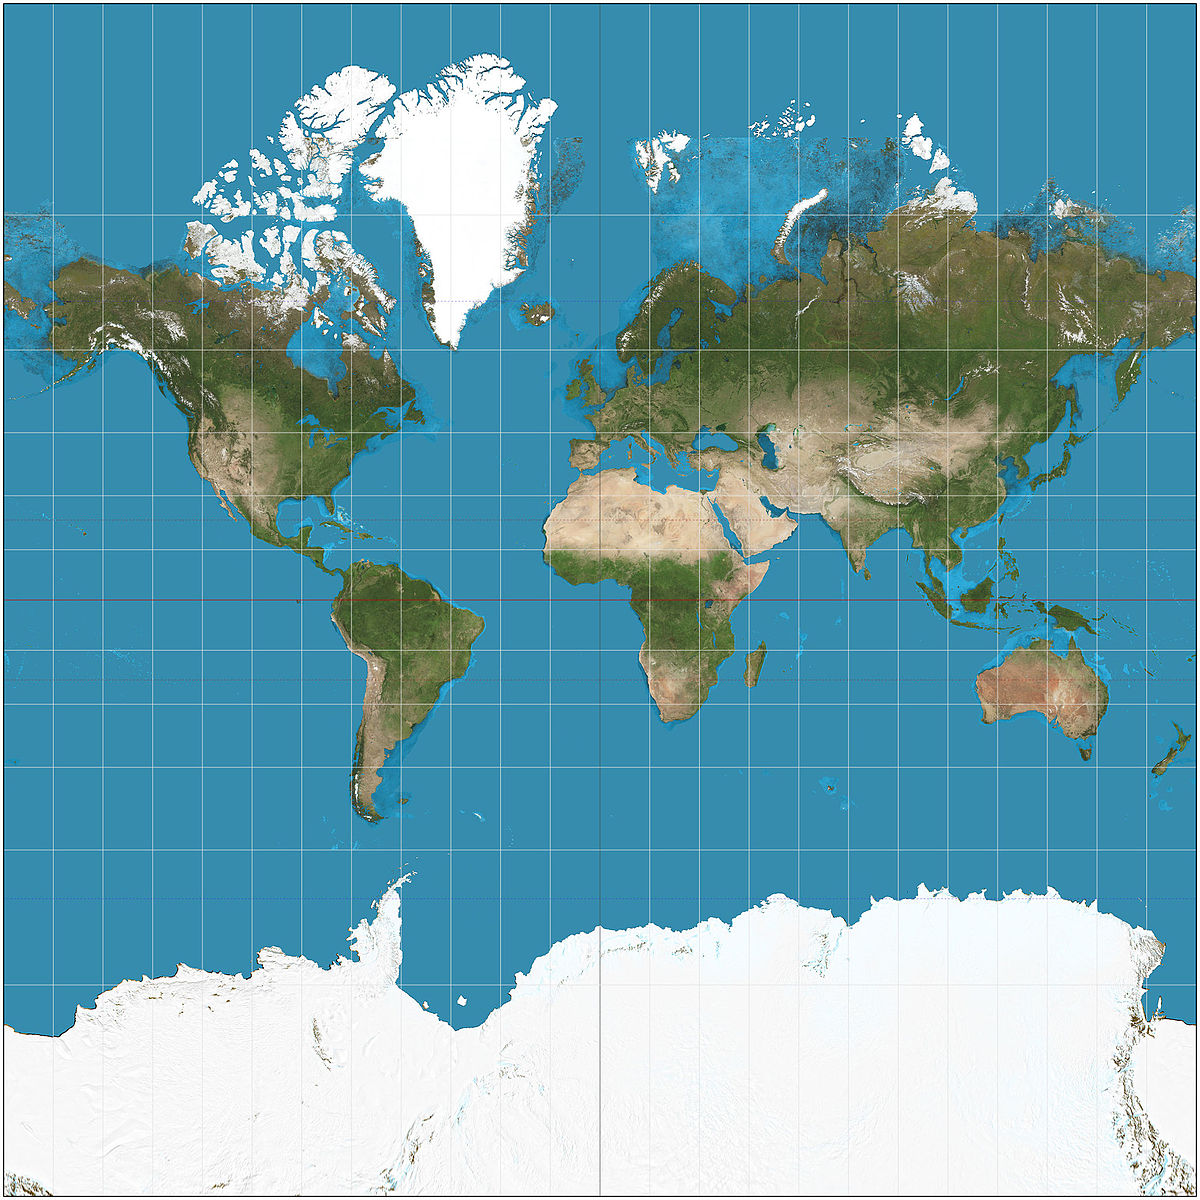 Mercator projection - Wikipedia on continents of world, physical map world, topography of world, geography world, region of world, cities of world, map with equator, world map time, blank map world, biomes of the world, world map flash, political world map, seven wonders of the world, map madagascar, free world map, rivers of the world, world map for pc, map outline world, oldmap of world, globe of world, water of world, deserts of the world, atlas of world, license plate of world, diagram of world,